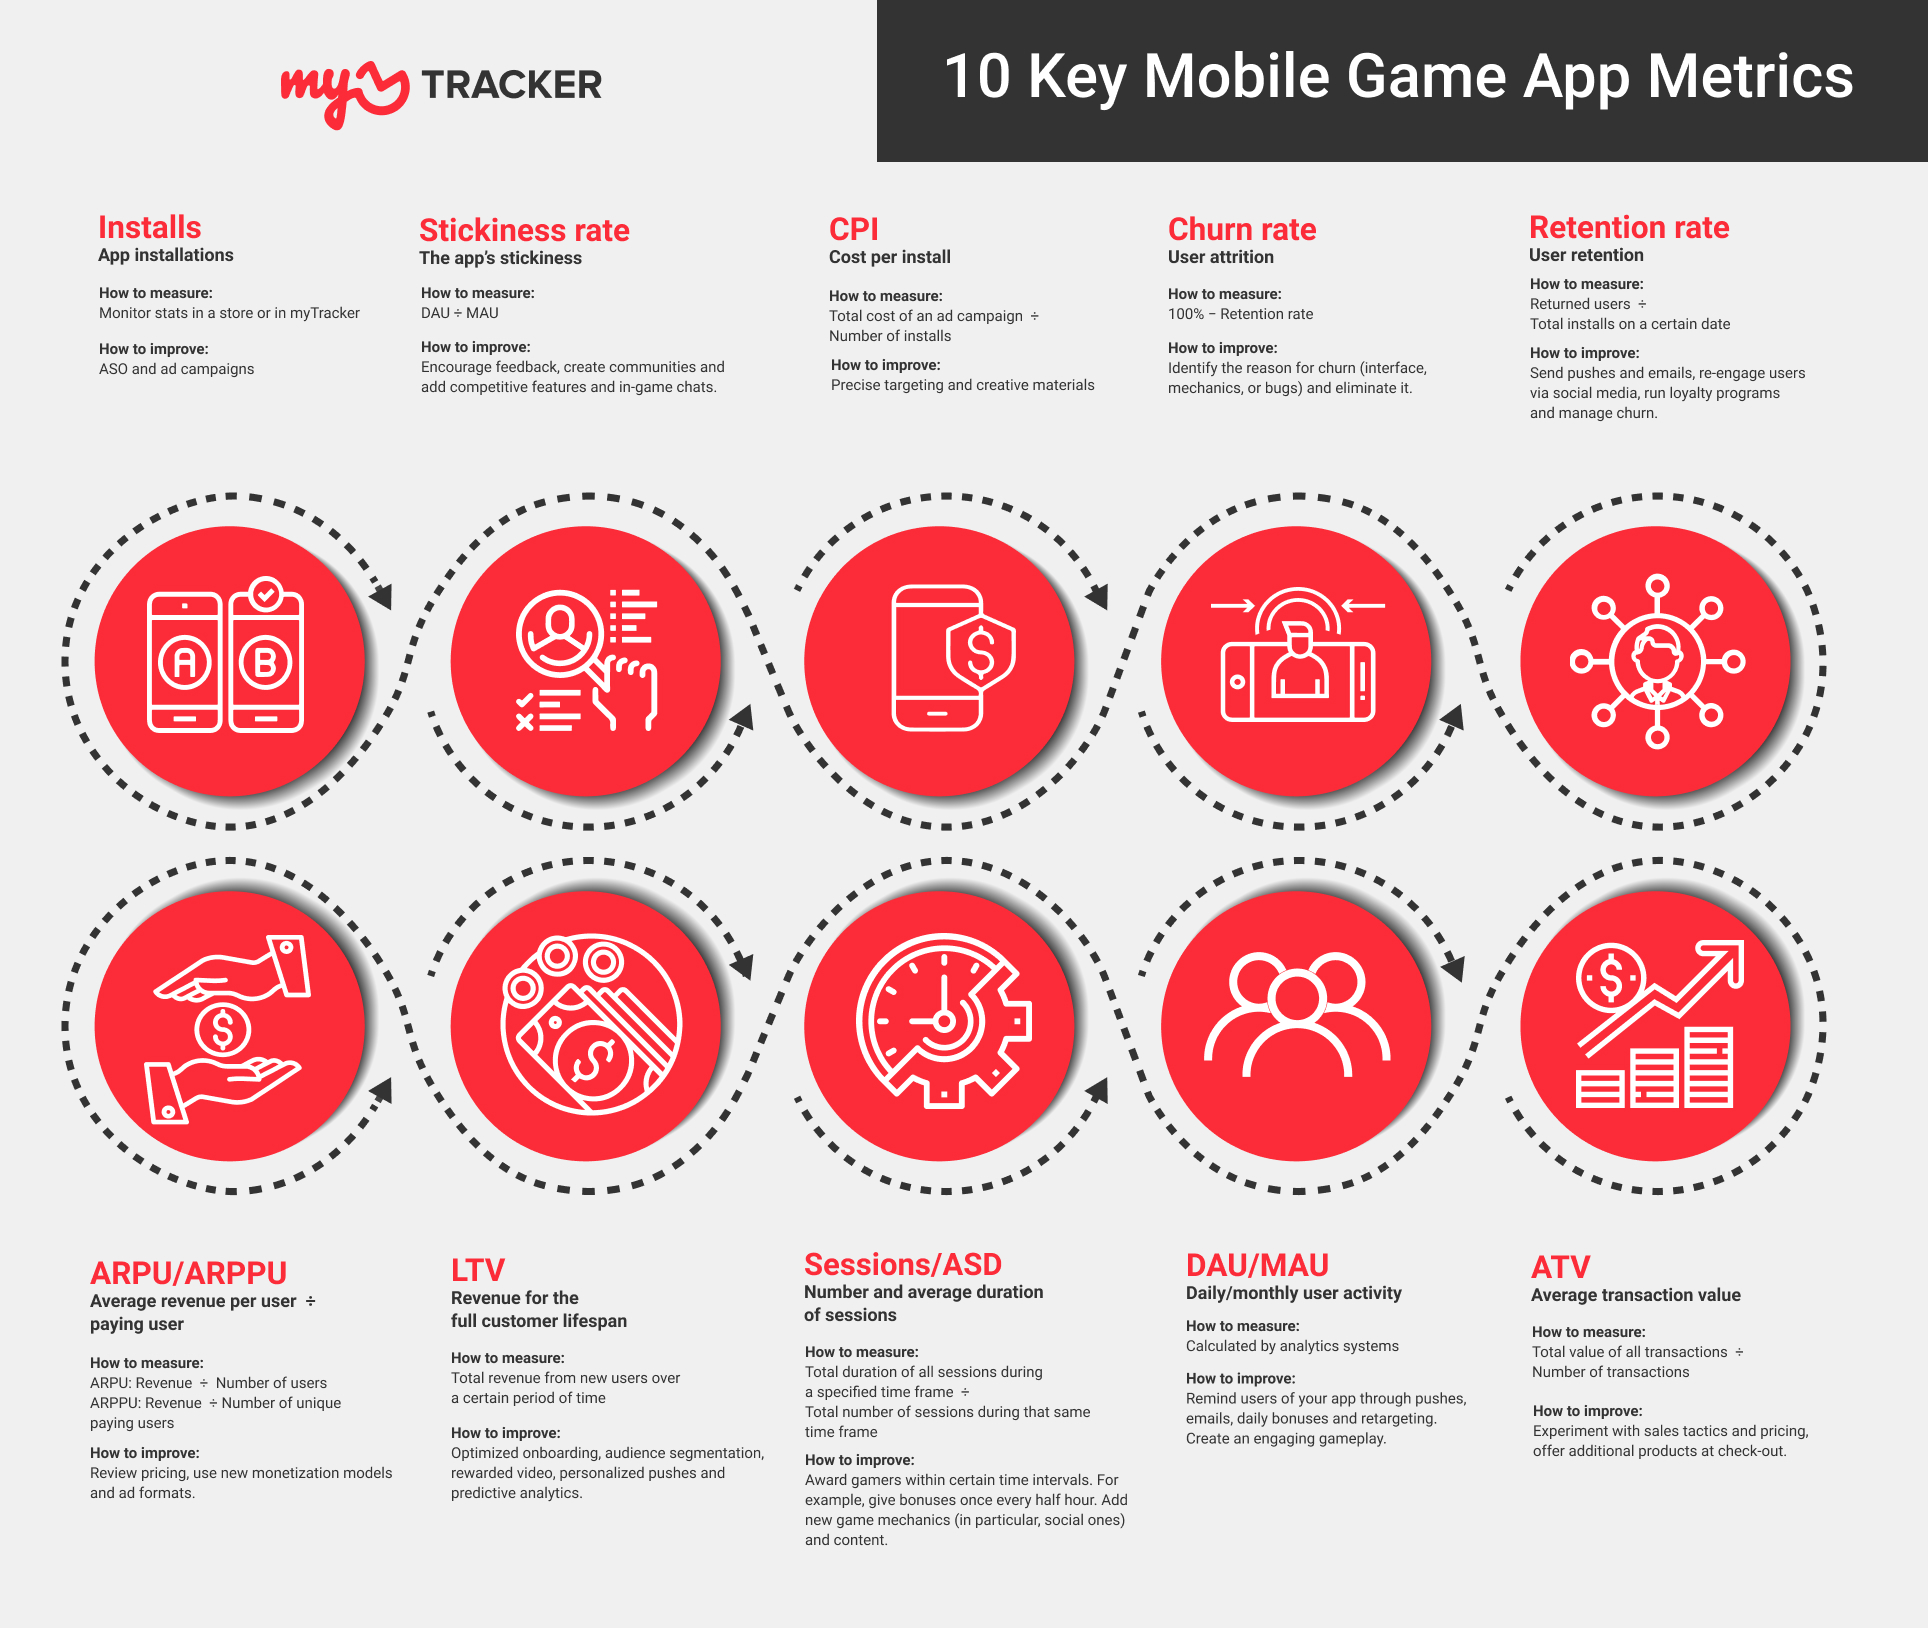 10 Key Mobile Game App Metrics